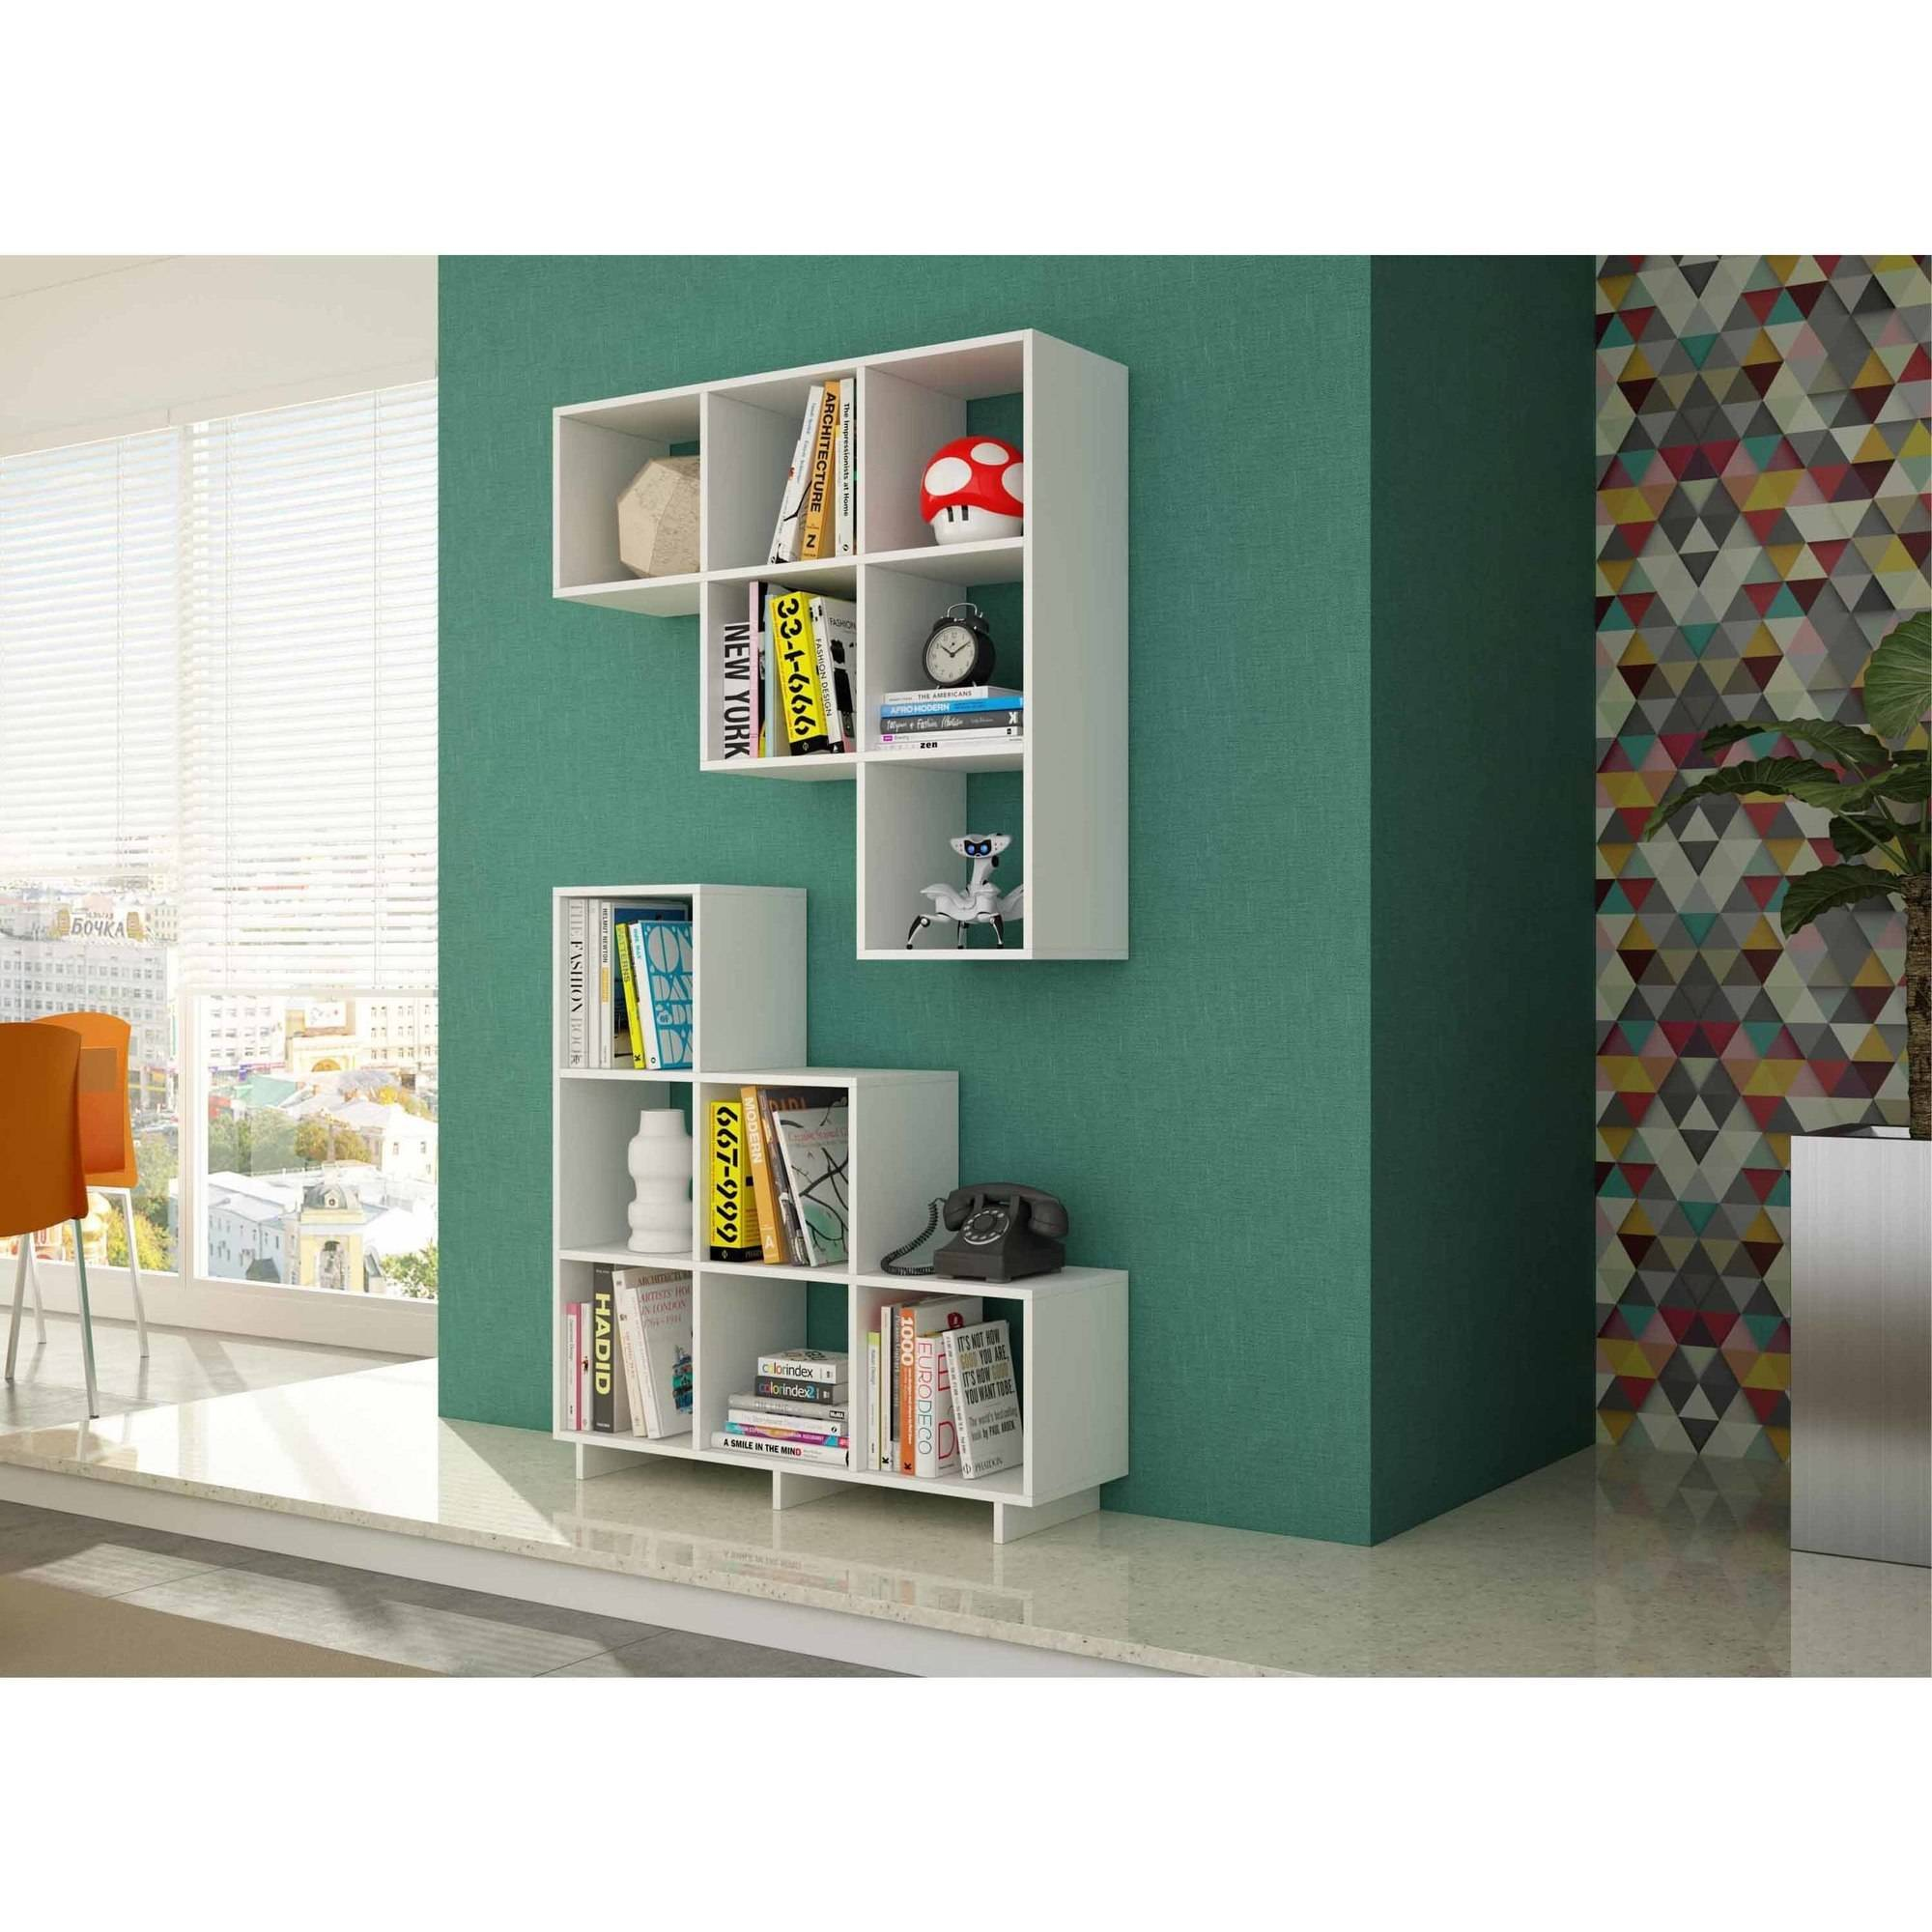 Manhattan Comfort Accentuations Sophisticated Cascavel Stair Cubby with 6 Cube Shelves, Set of 2